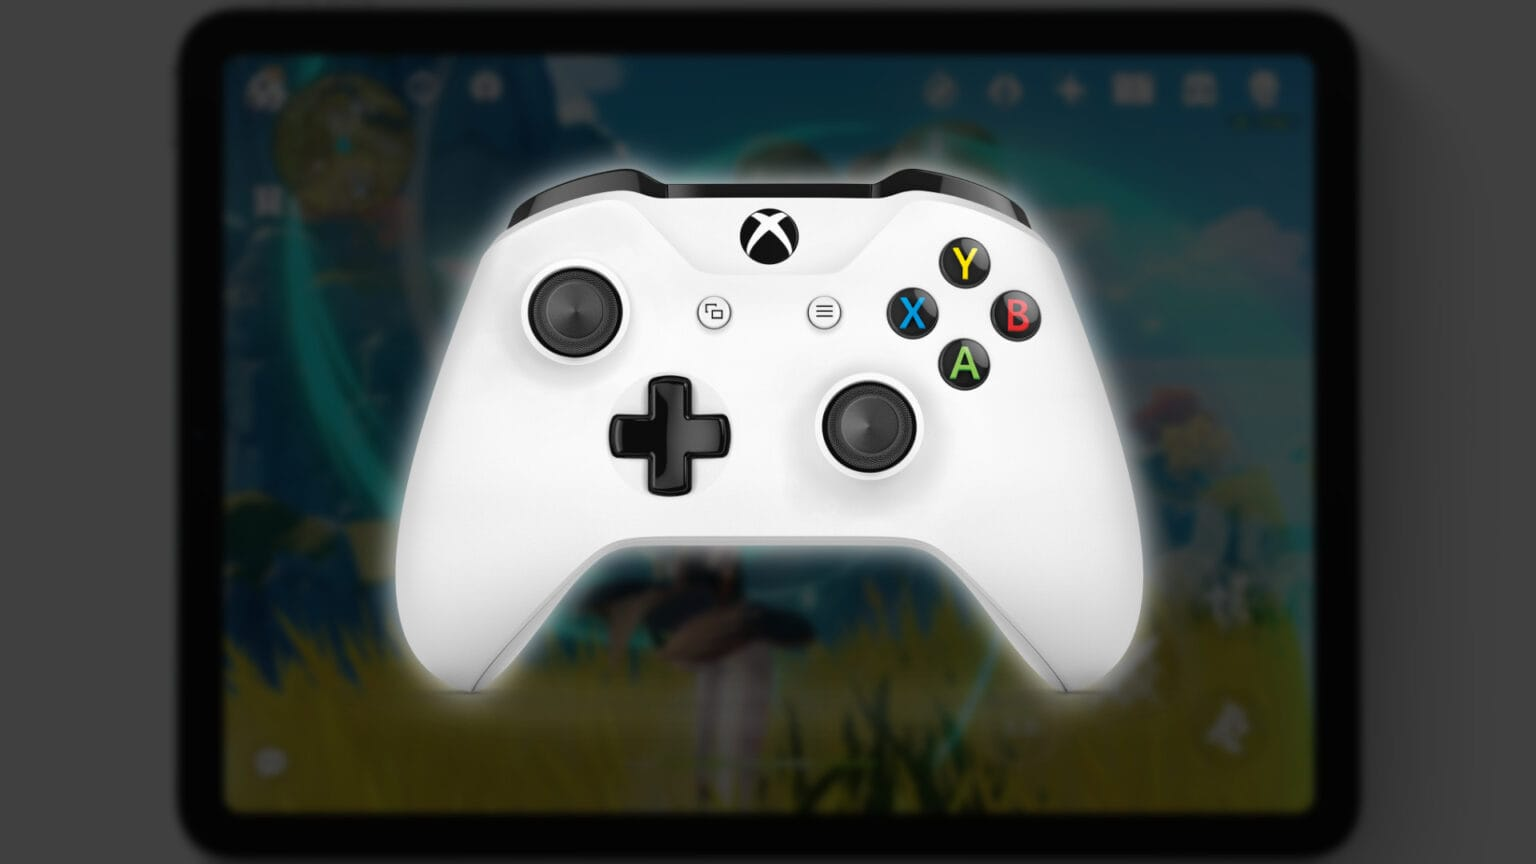 Xbox Controller with iPad